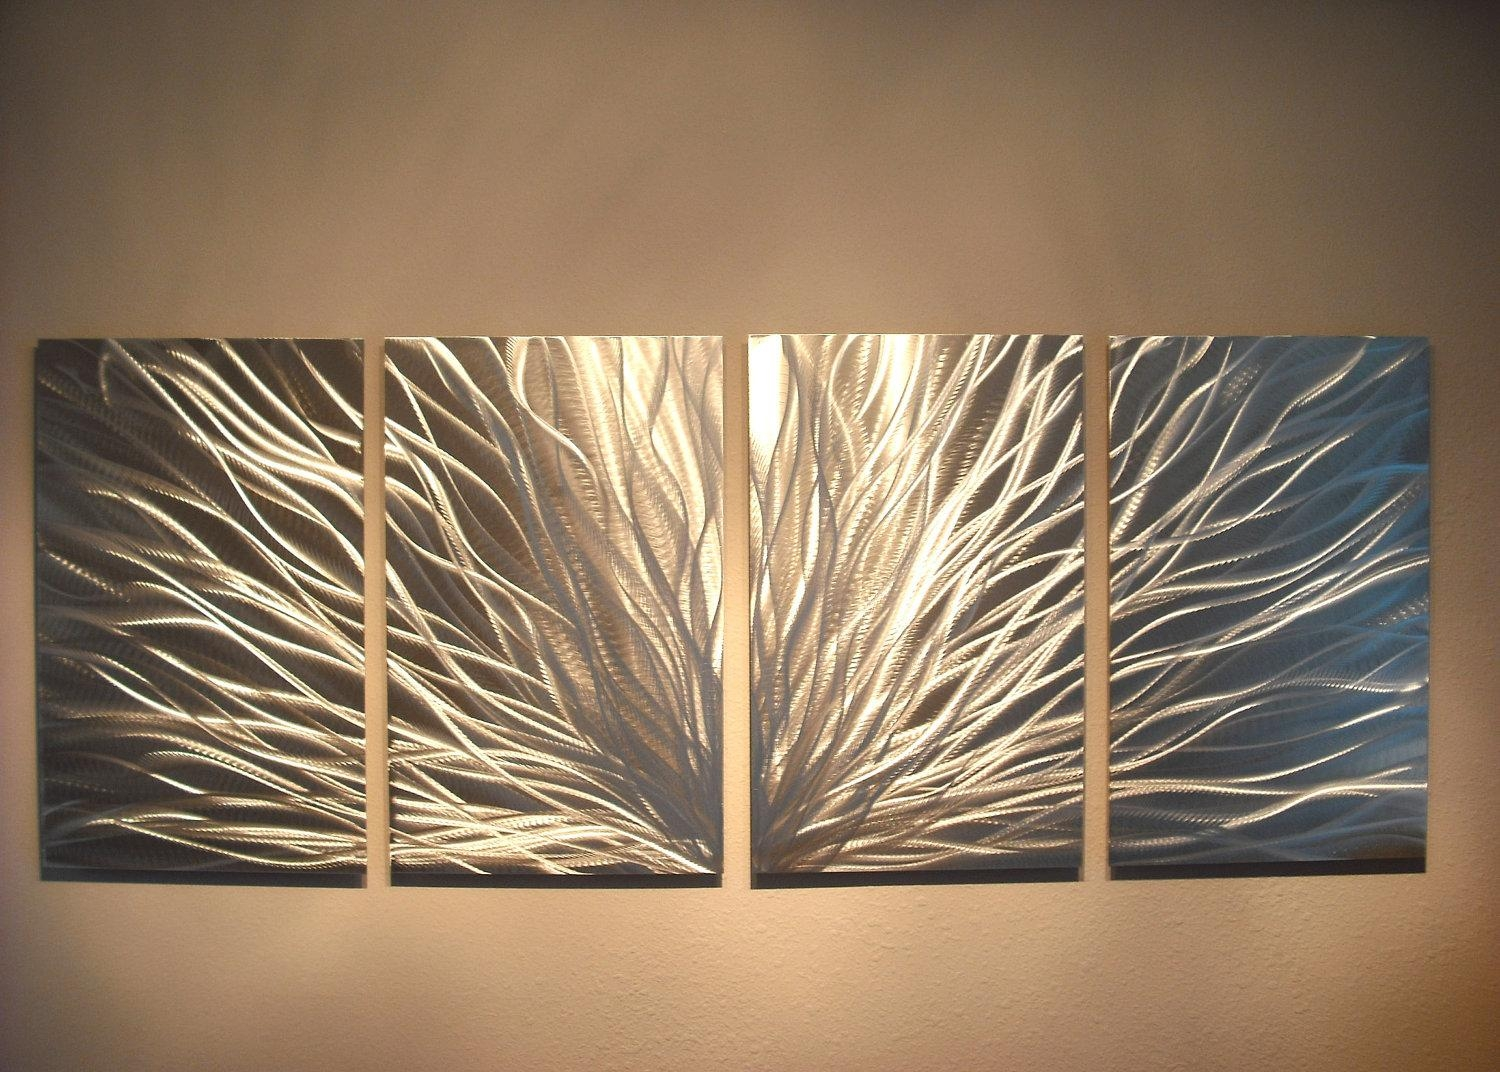 Metal Wall Art Decor Abstract Aluminum Contemporary Modern With Regard To Large Abstract Metal Wall Art (View 3 of 20)